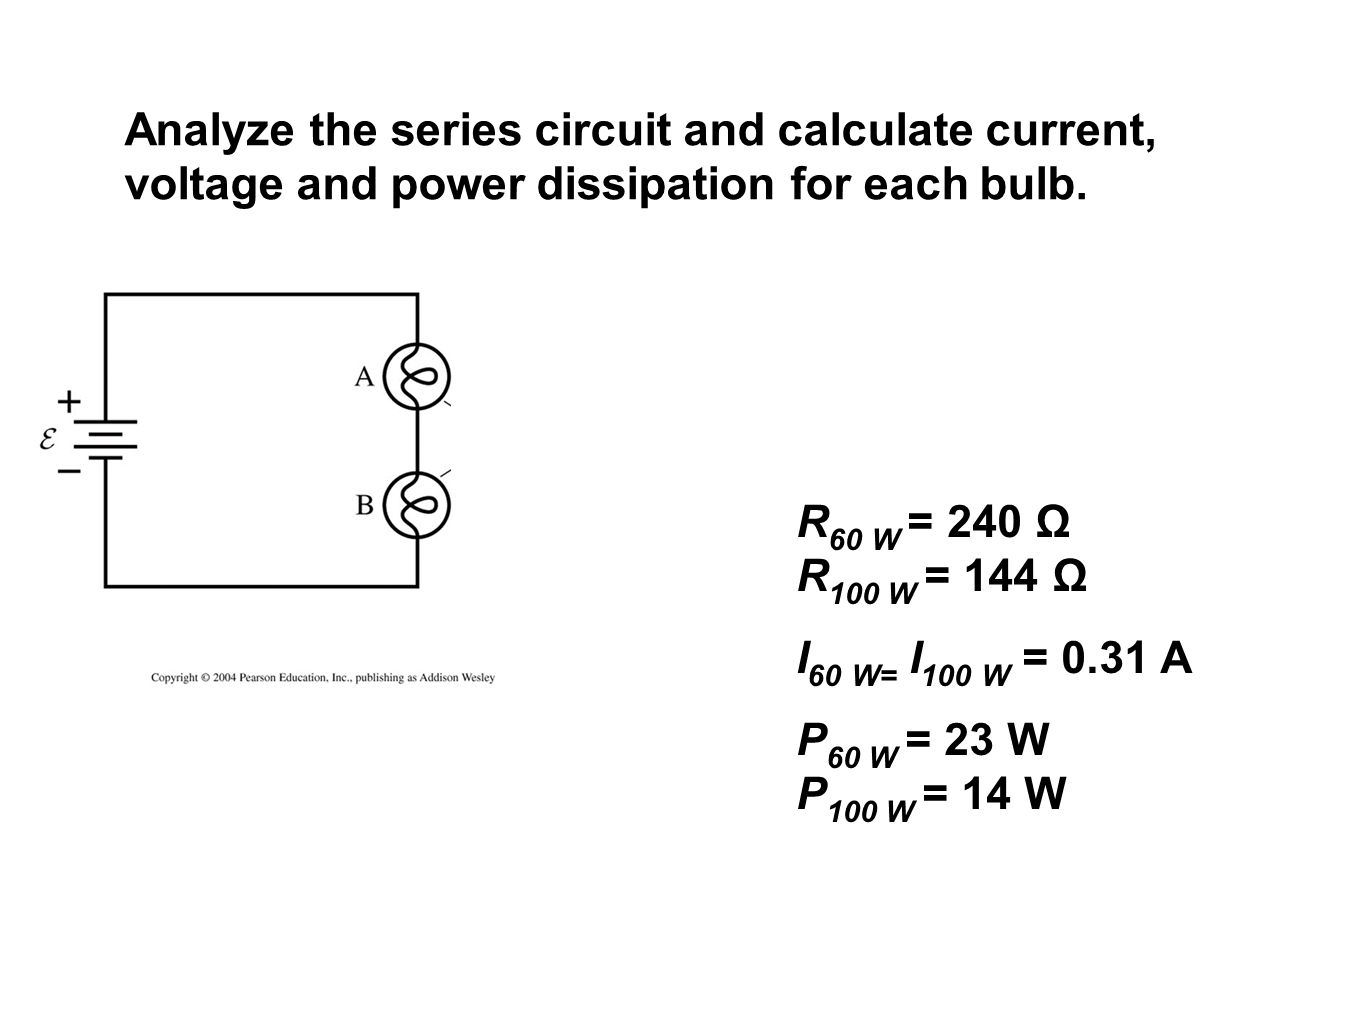 Series And Parallel Circuits Ppt Video Online Download In A Circuit Analyze The Calculate Current Voltage Power Dissipation For Each Bulb